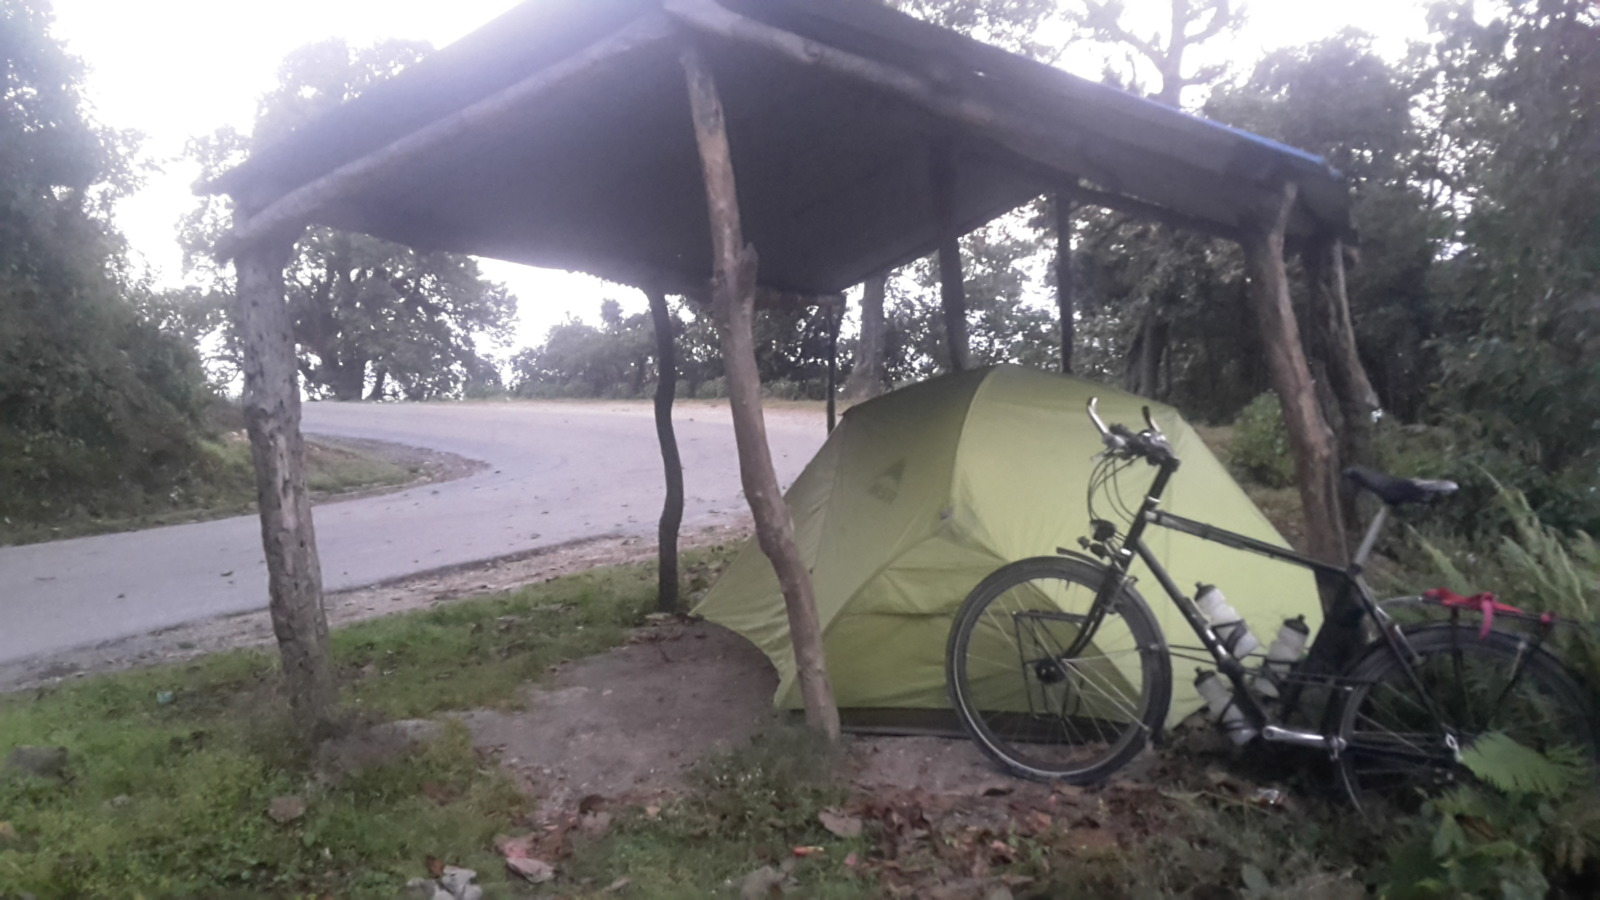 Tent by the side of the road